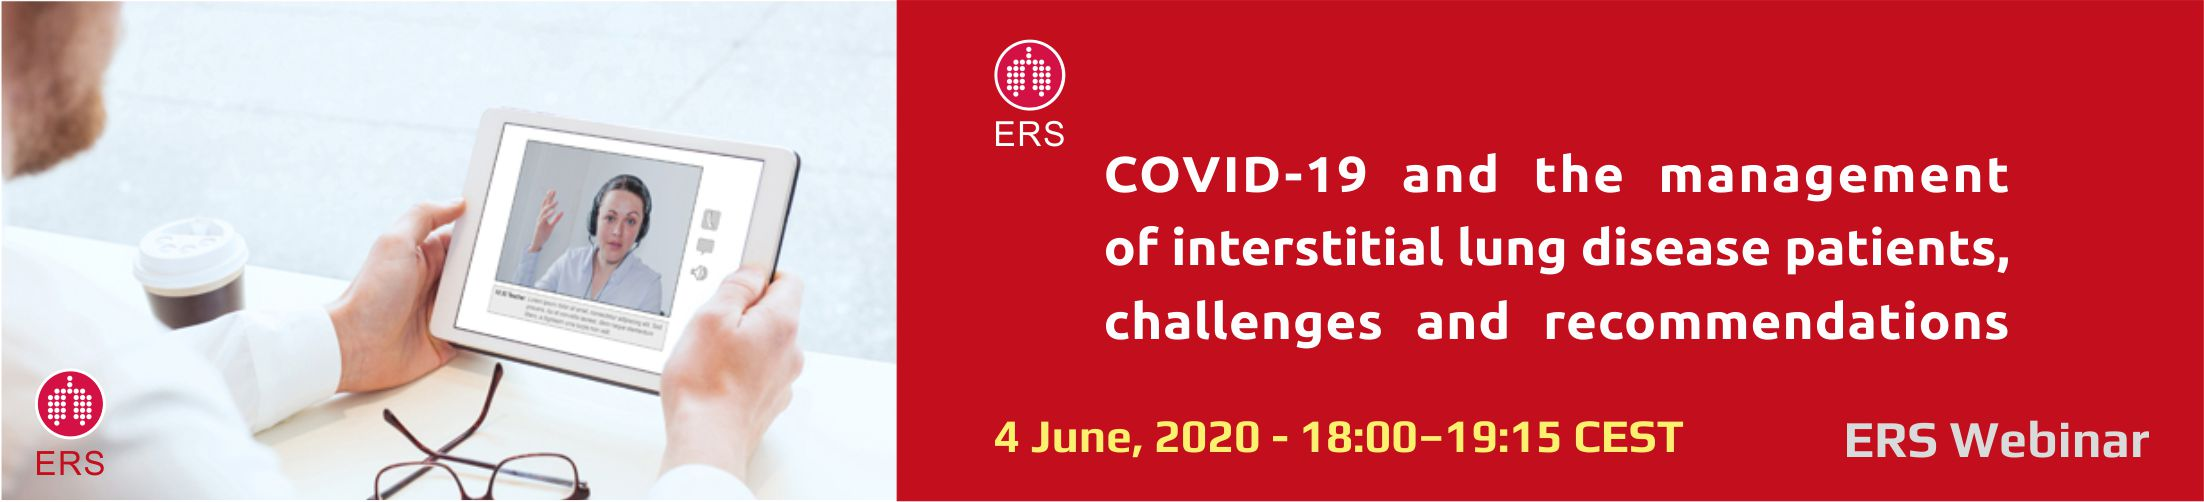 ERS webinar-COVID-19 and the management of interstitial lung disease patients_1a